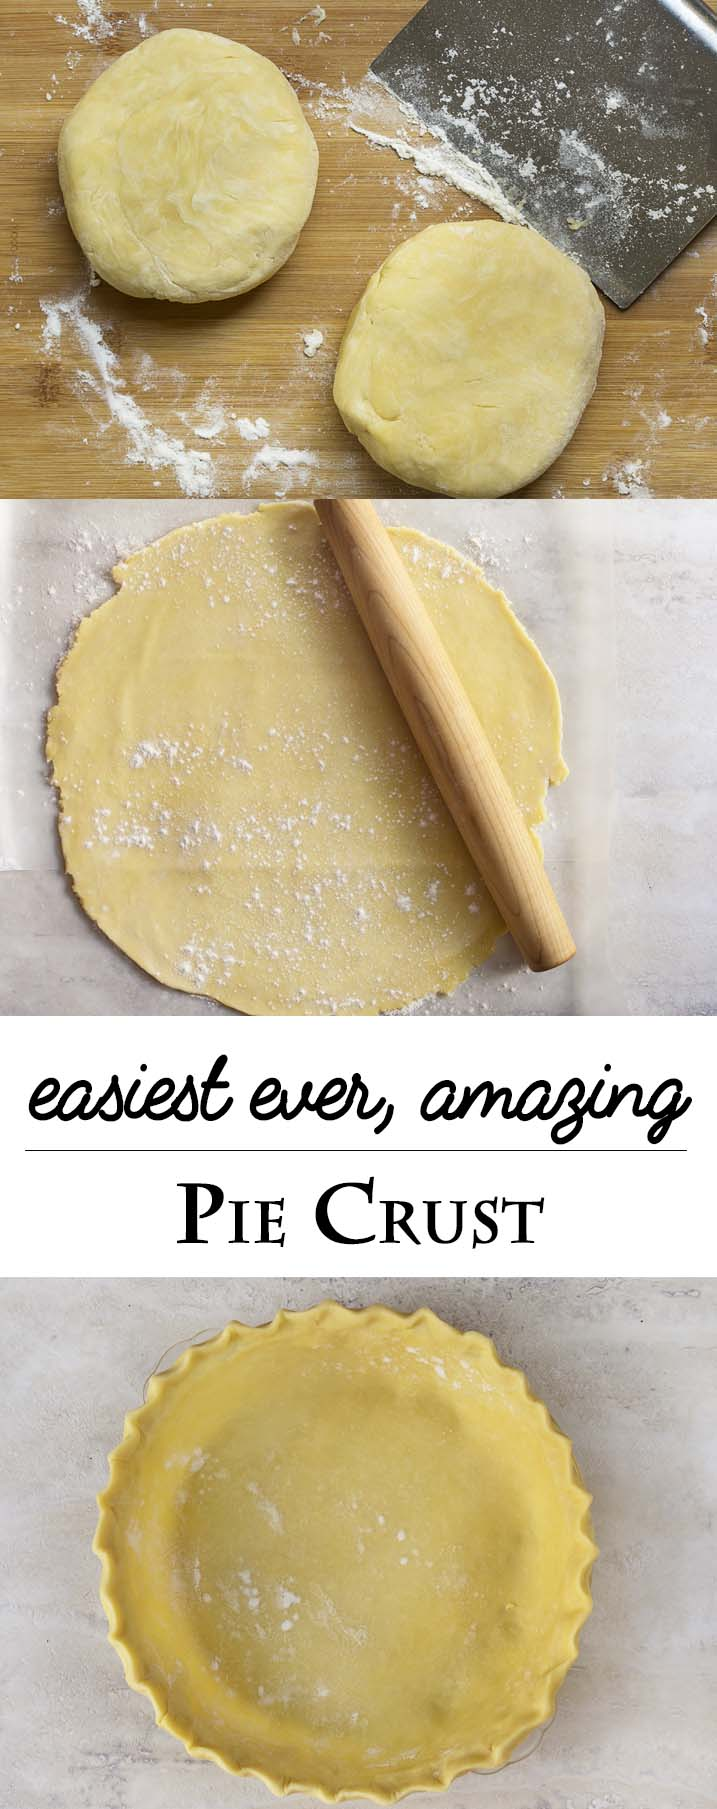 Throw out everything you know about making pie crust to make the best easy flaky pie crust you've ever made. Simple, all butter, no fail! | justalittlebitofbacon.com